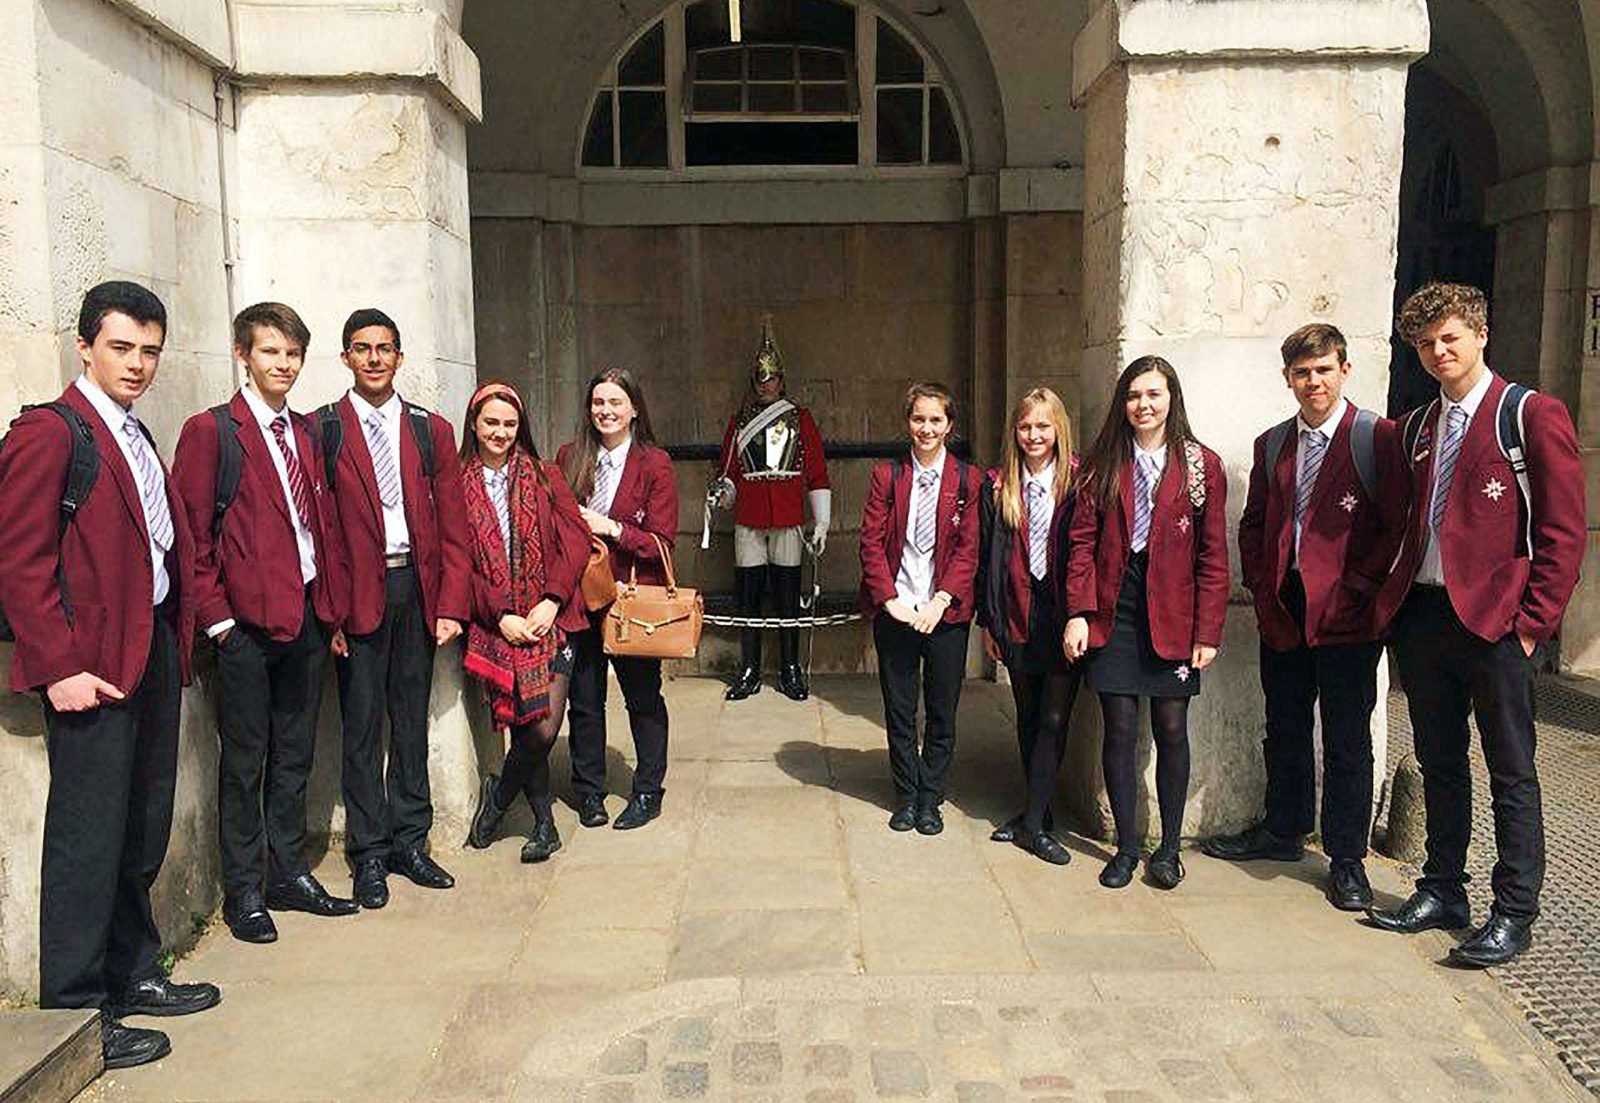 LEADERS OF TOMORROW? The Arnewood School's Year 11 students who recently visited the Houses of Parliament to meet local their MP Desmond Swayne.